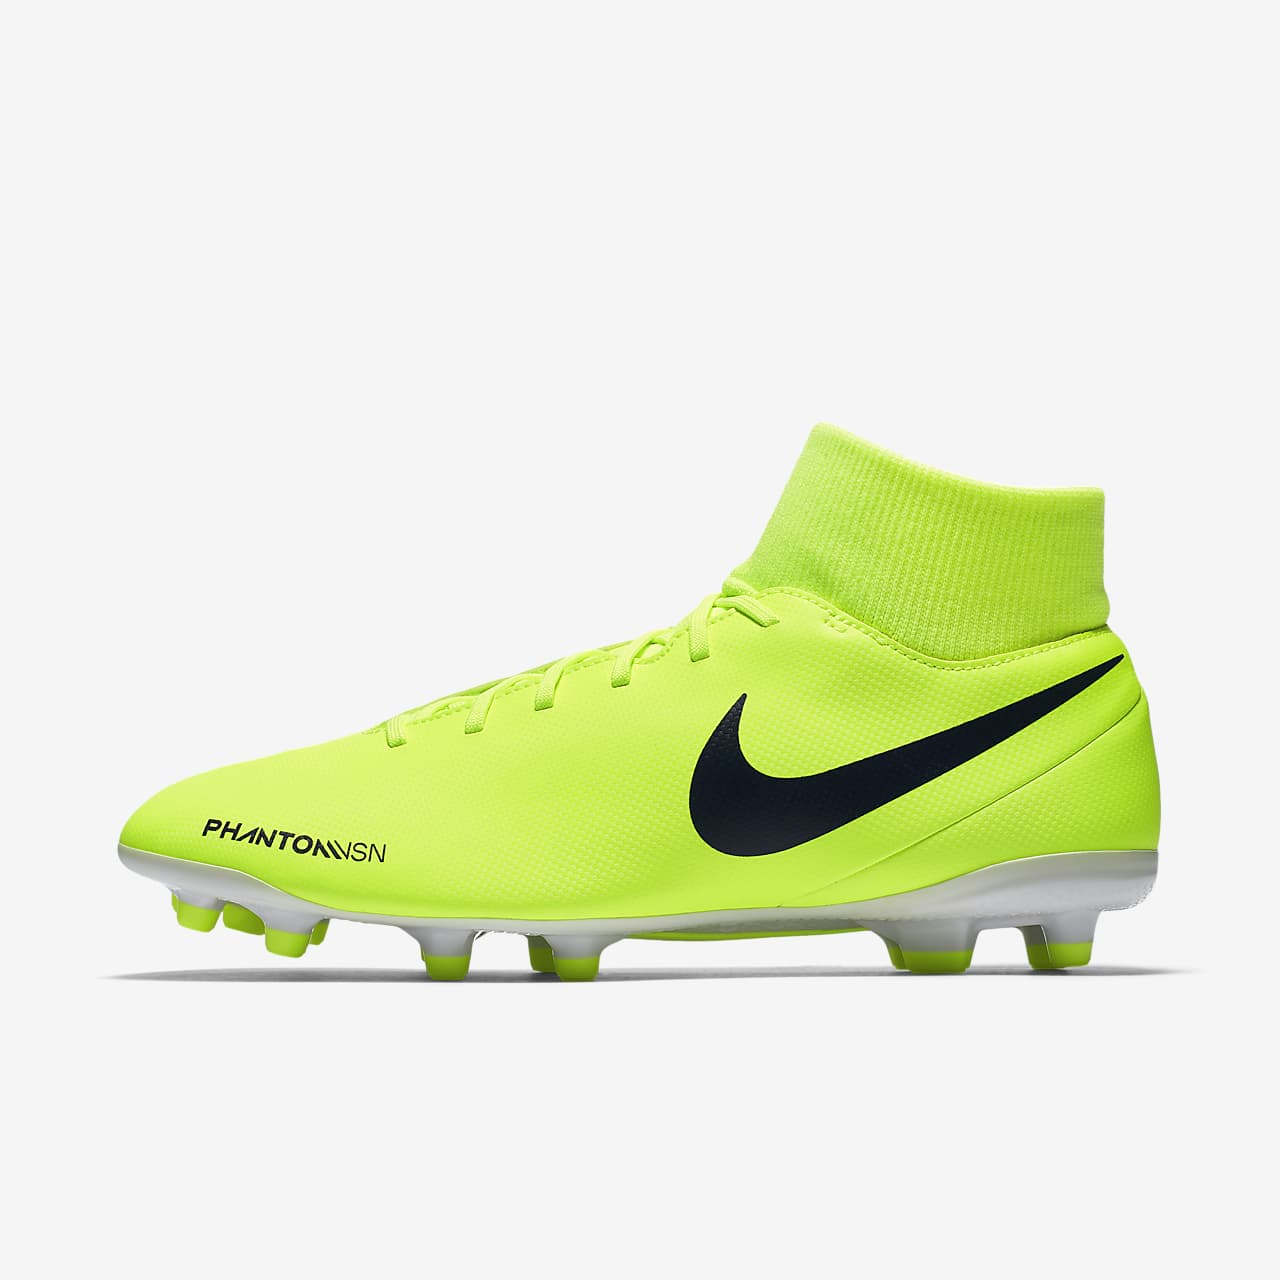 Nike Phantom Vision Club Dynamic Fit FG Firm-Ground Football Boot